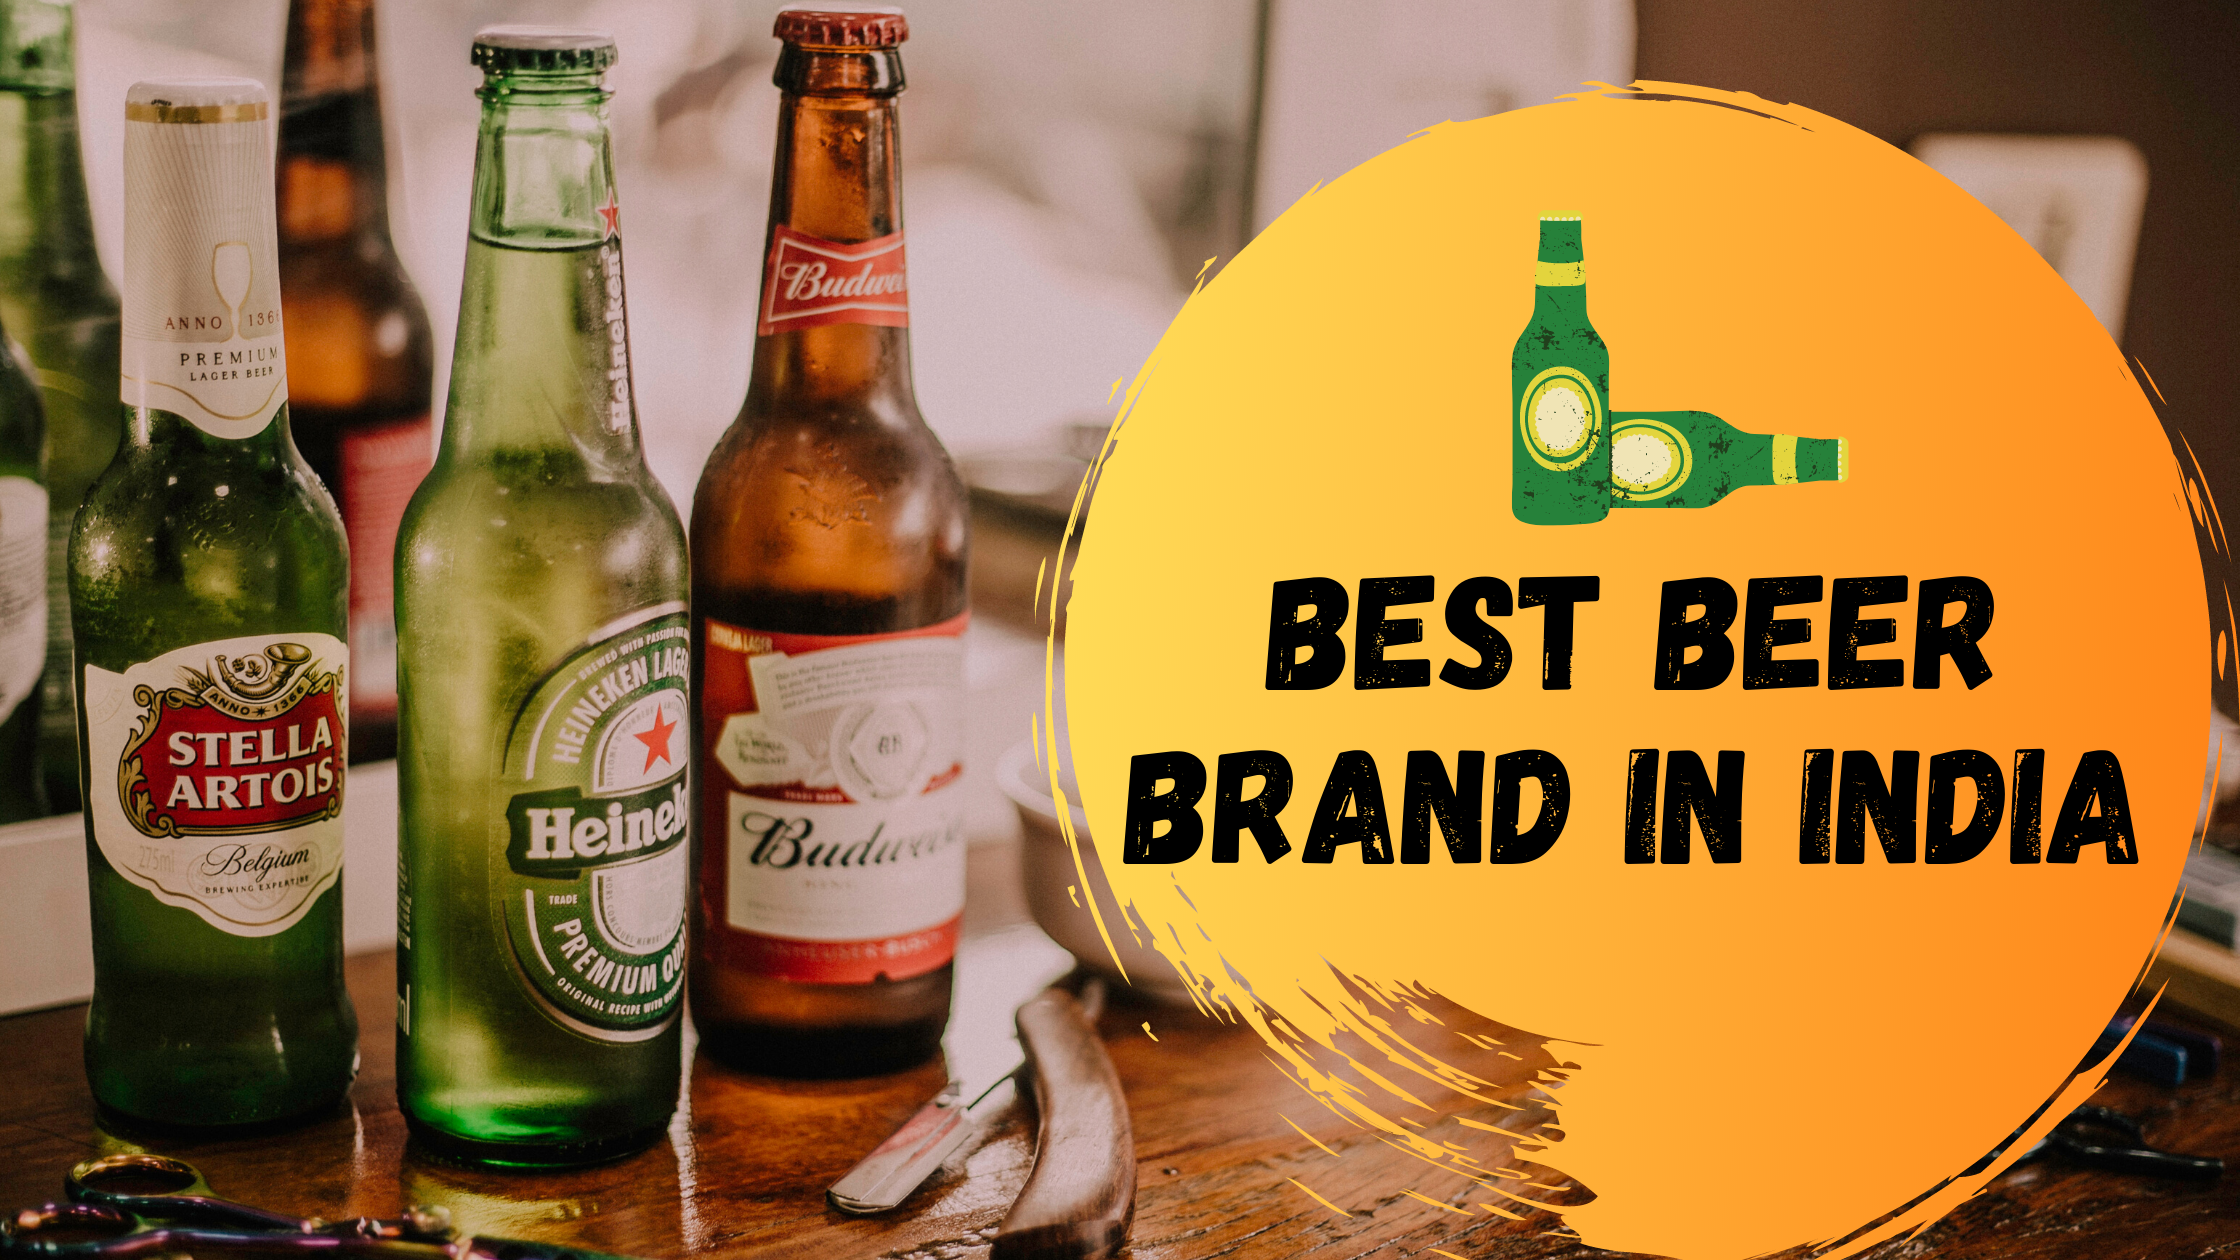 Here we have reviewed the best beer brands with price in India. We have done a detailed review on the best selling beer brands in India, and here we have their features, types, alcohol content, price and more.